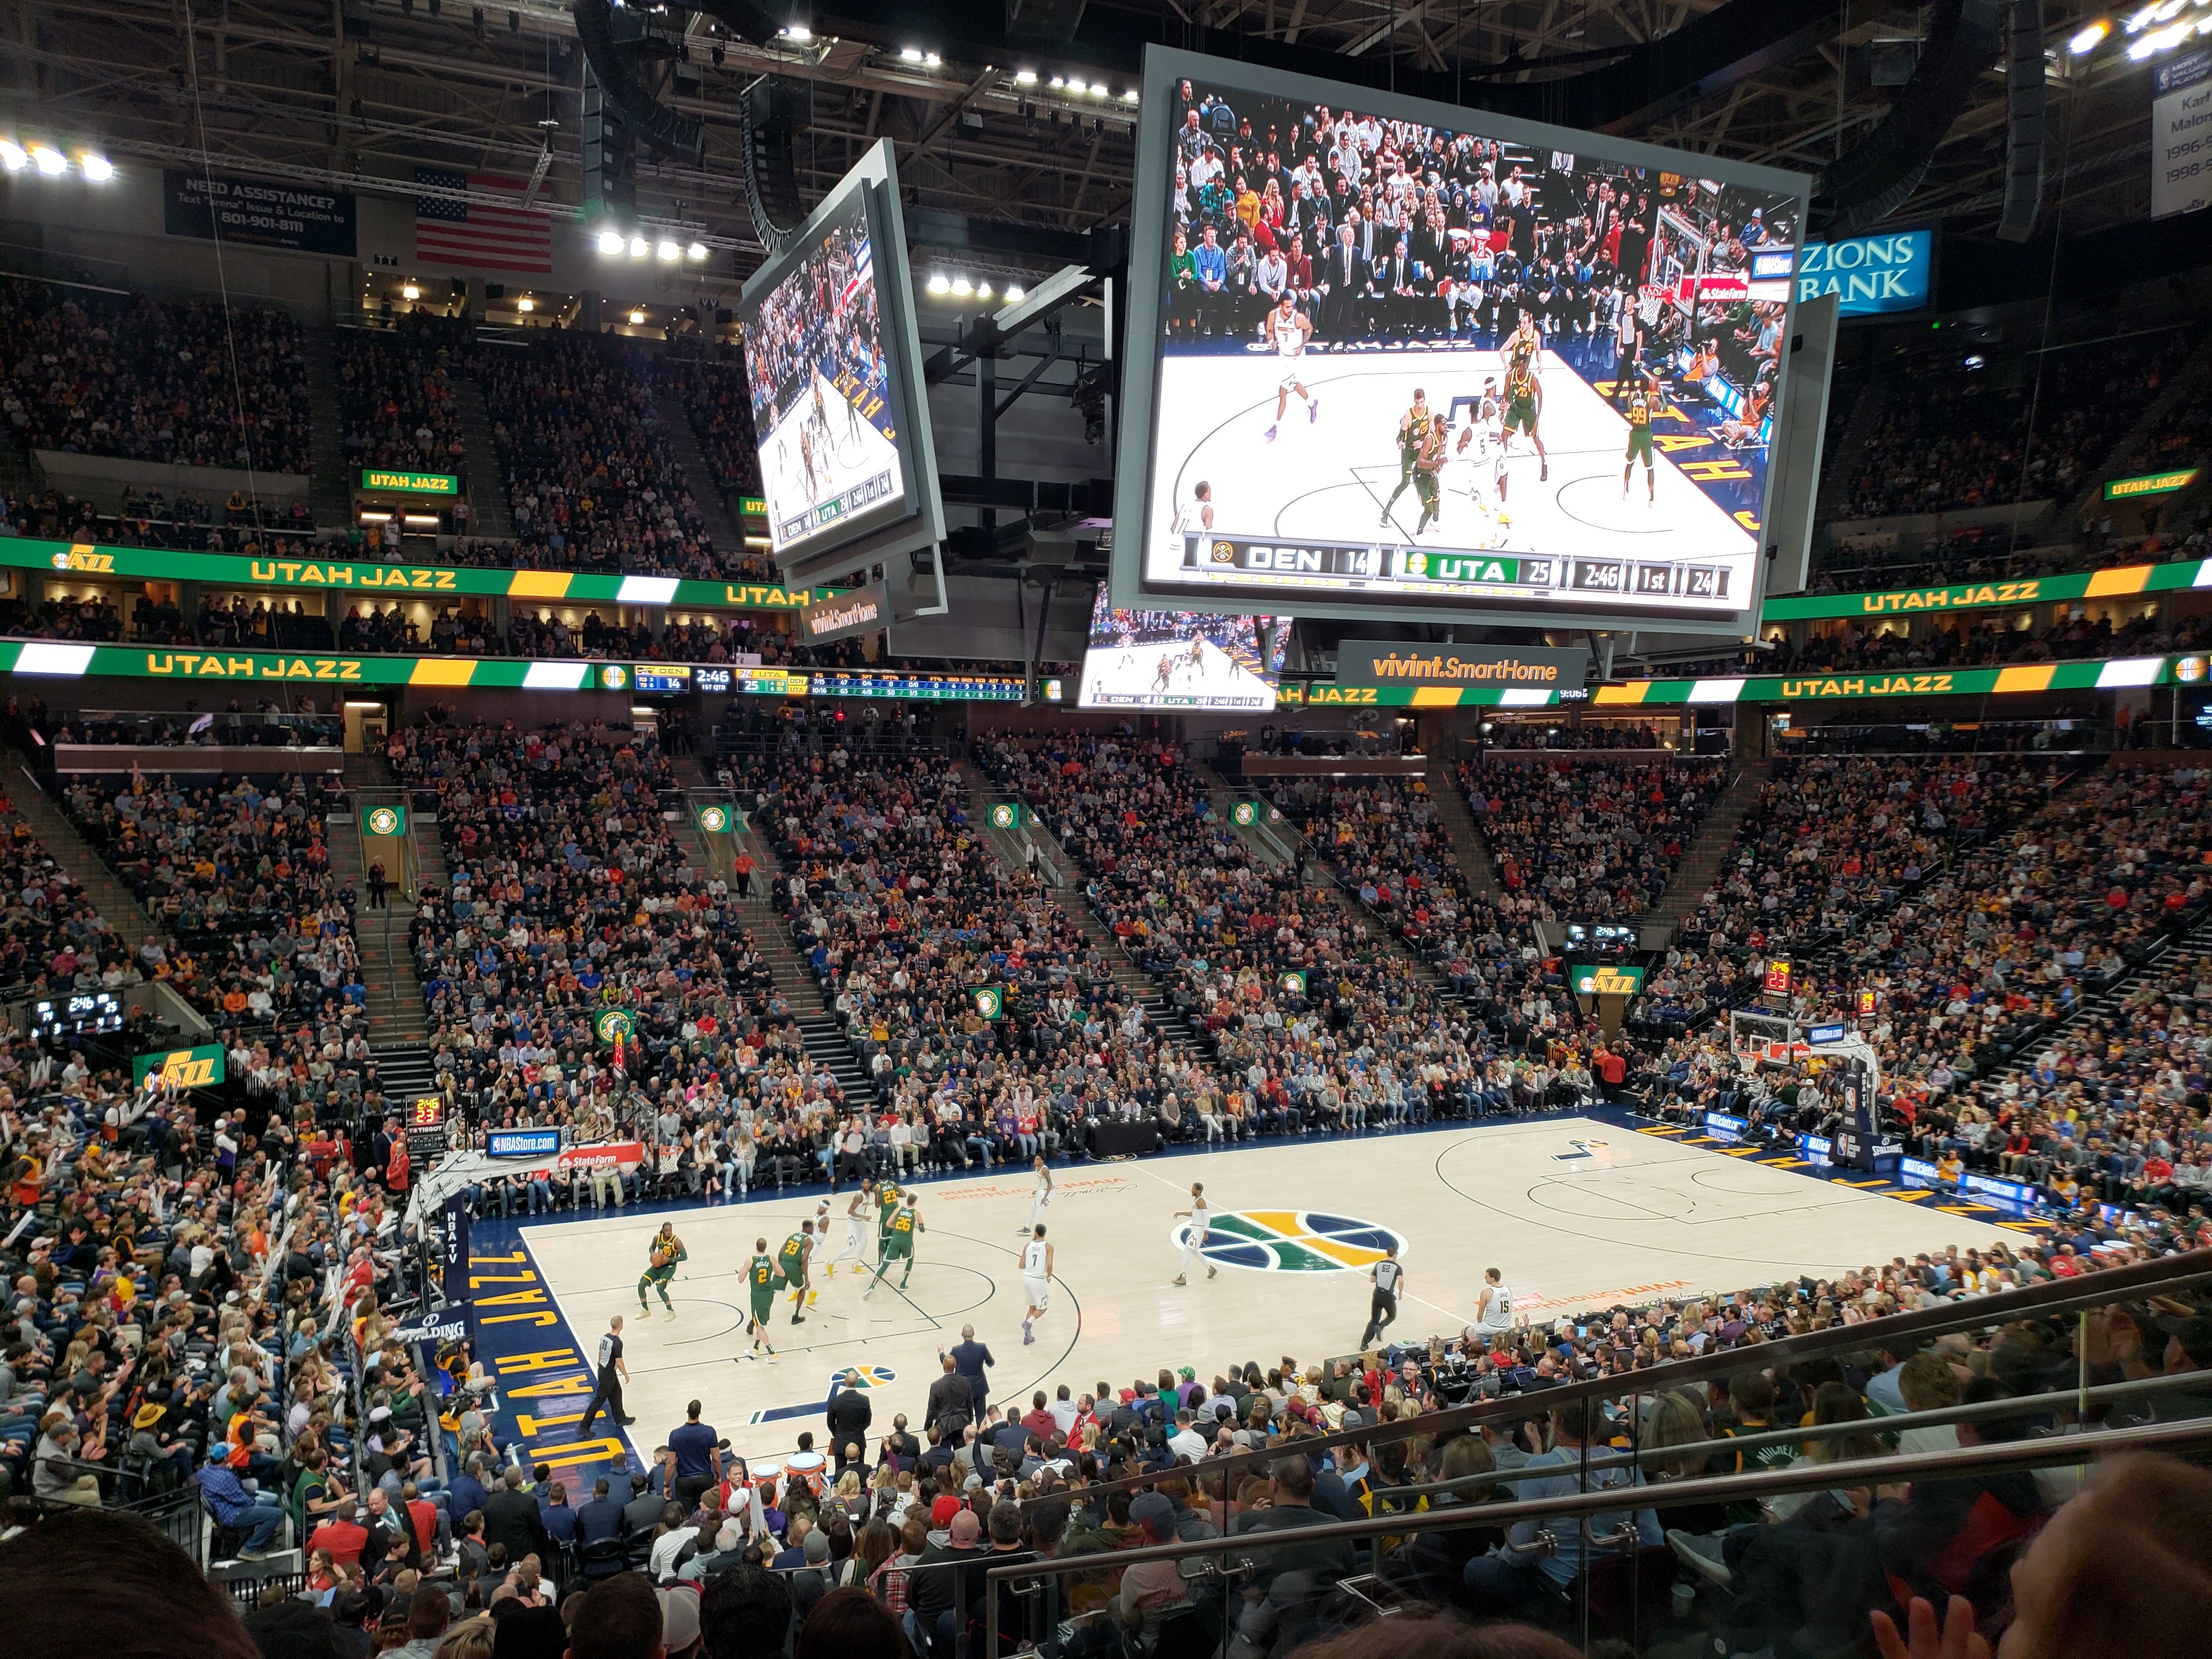 prismview a samsung electronics company digital signage at utah jazz arena vivint smart home arena